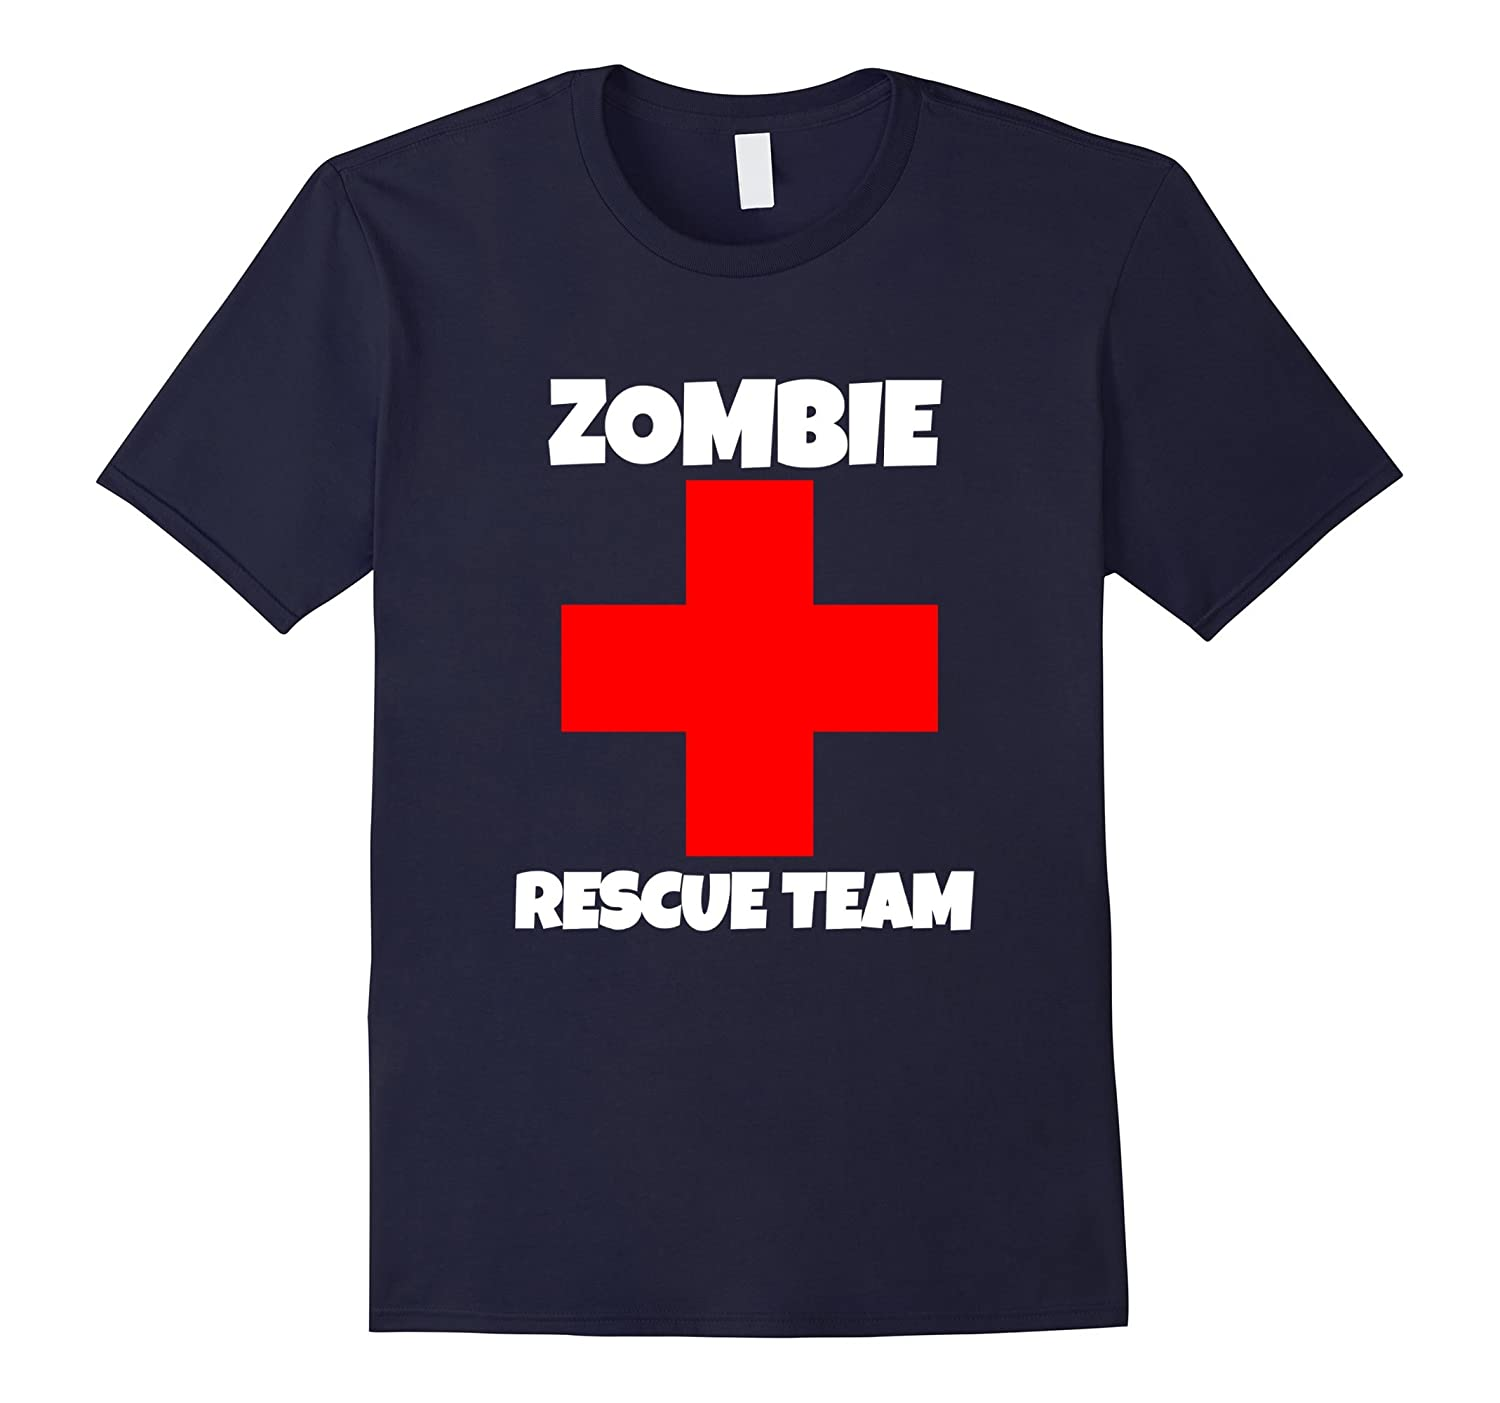 Zombie Outbreak Rescue team shirt halloween novelty gift-TJ